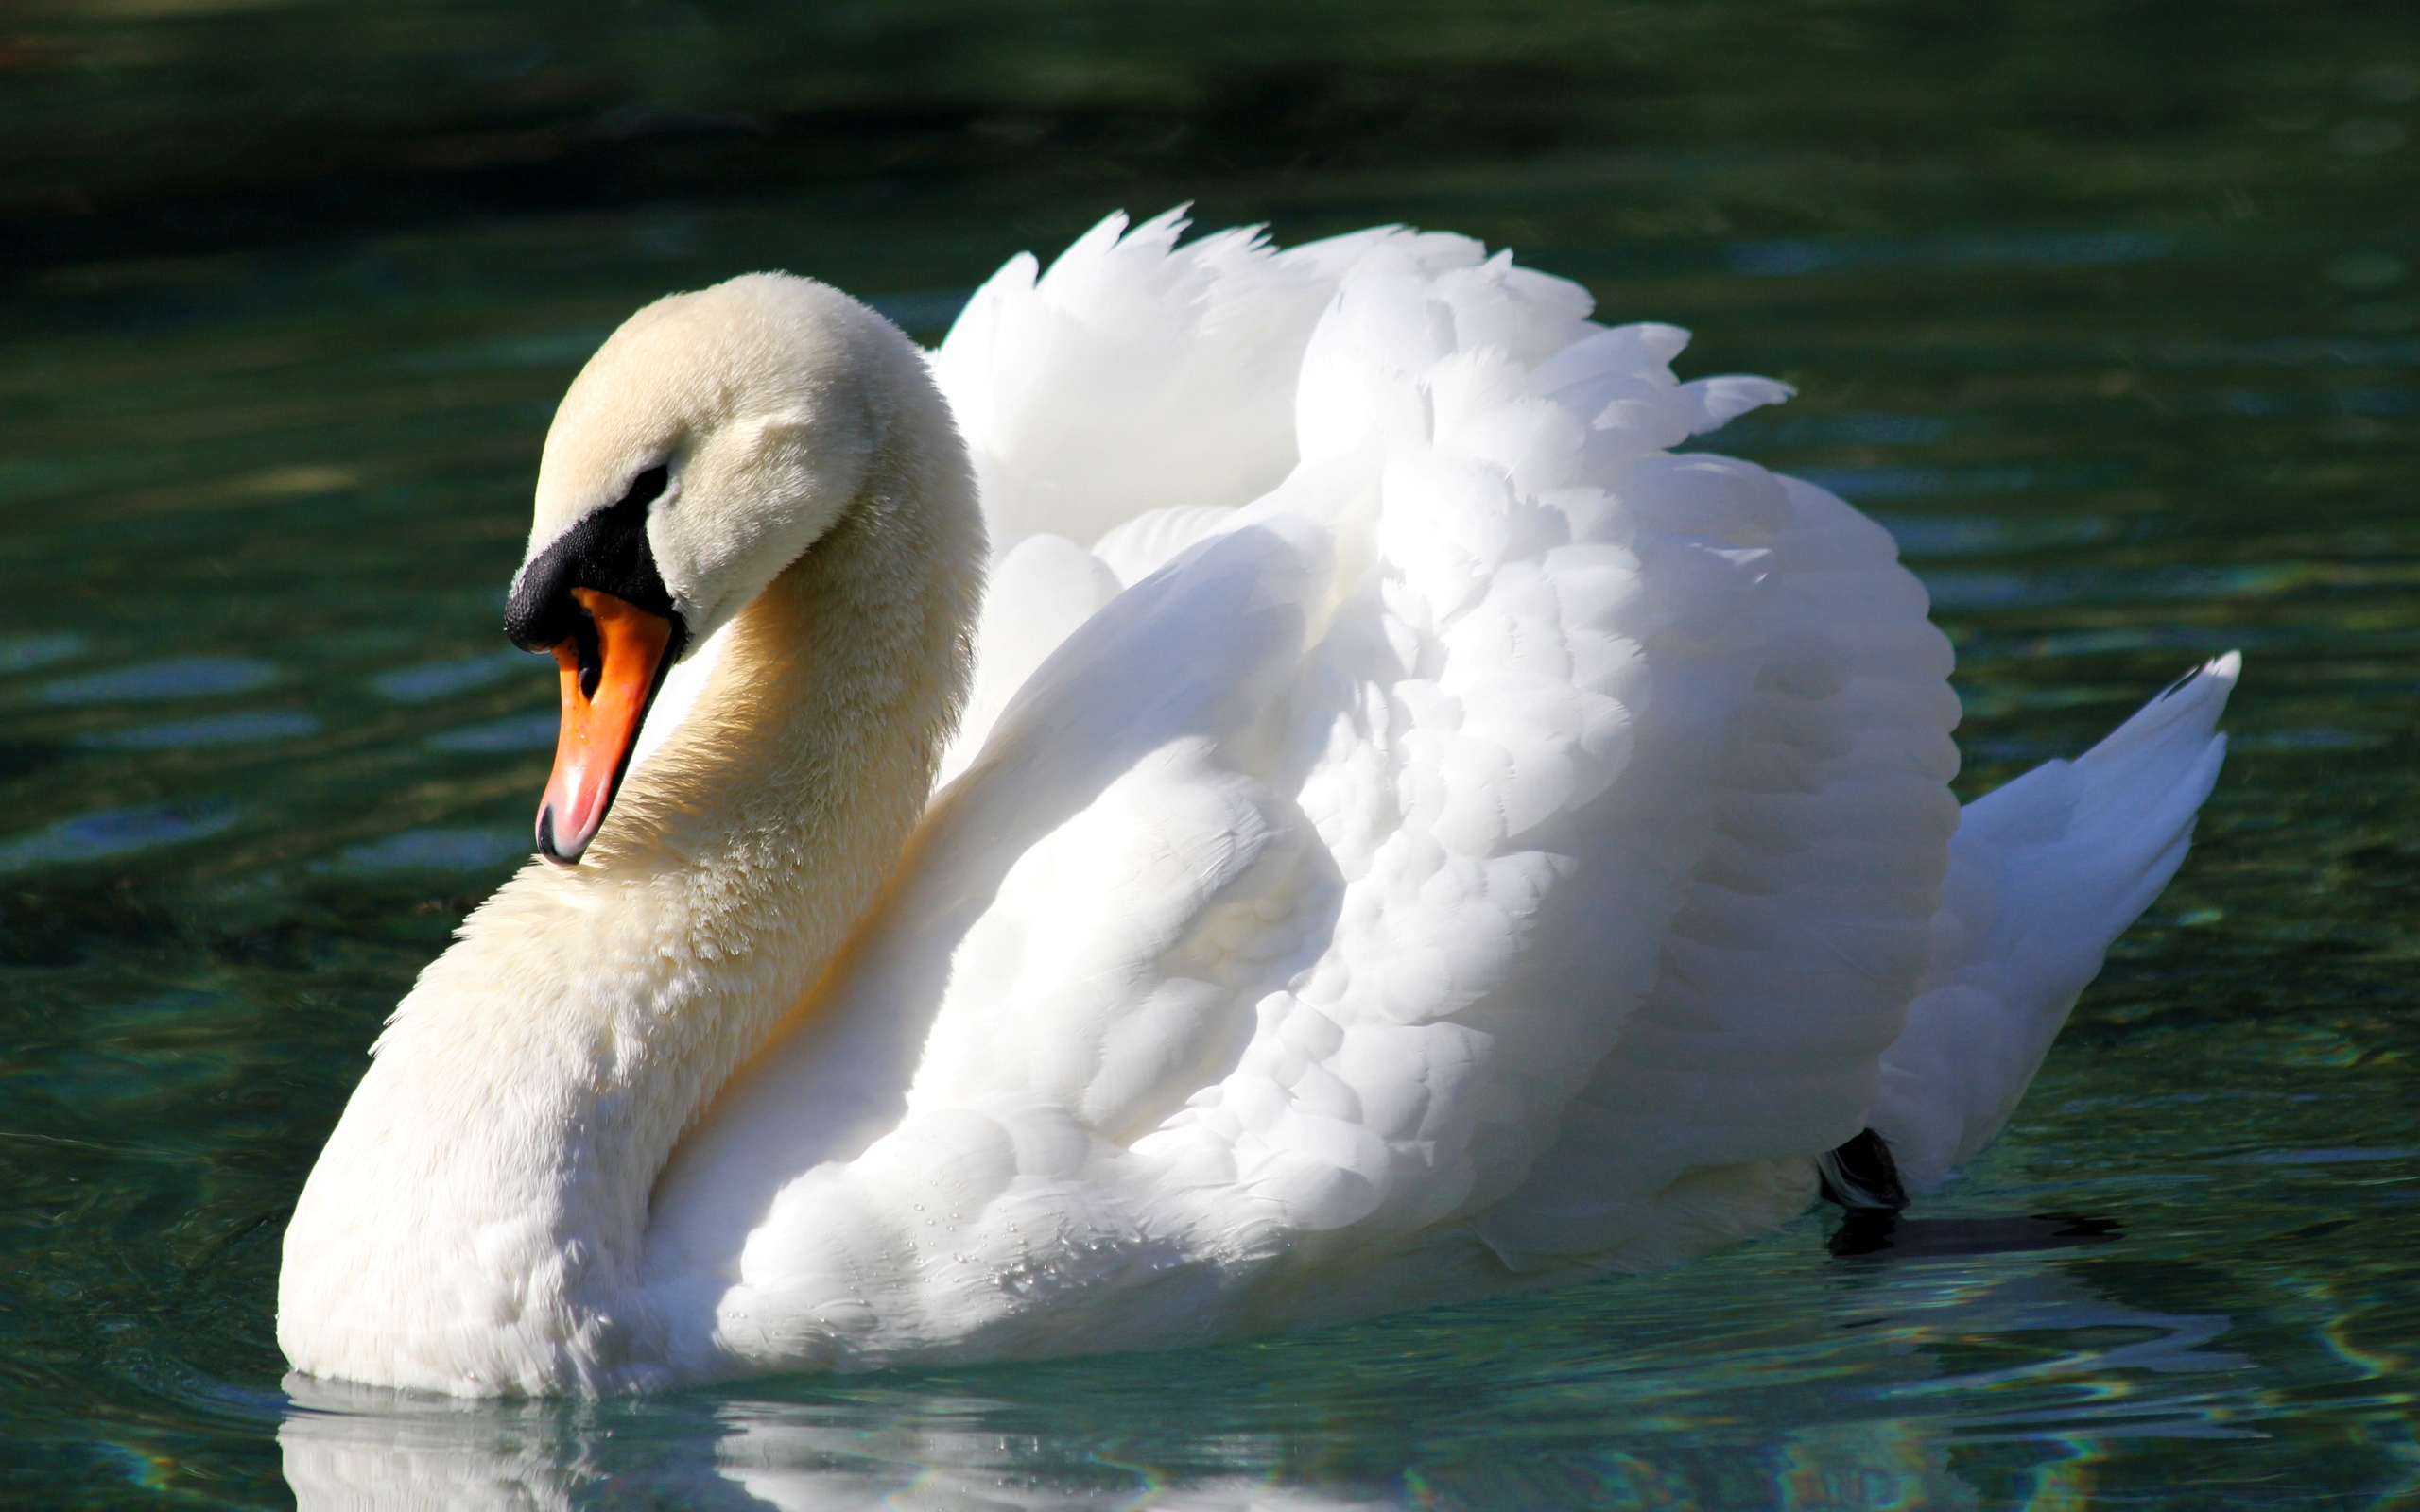 Mute swan Wallpapers 19 - 2560 X 1600 | stmed.net